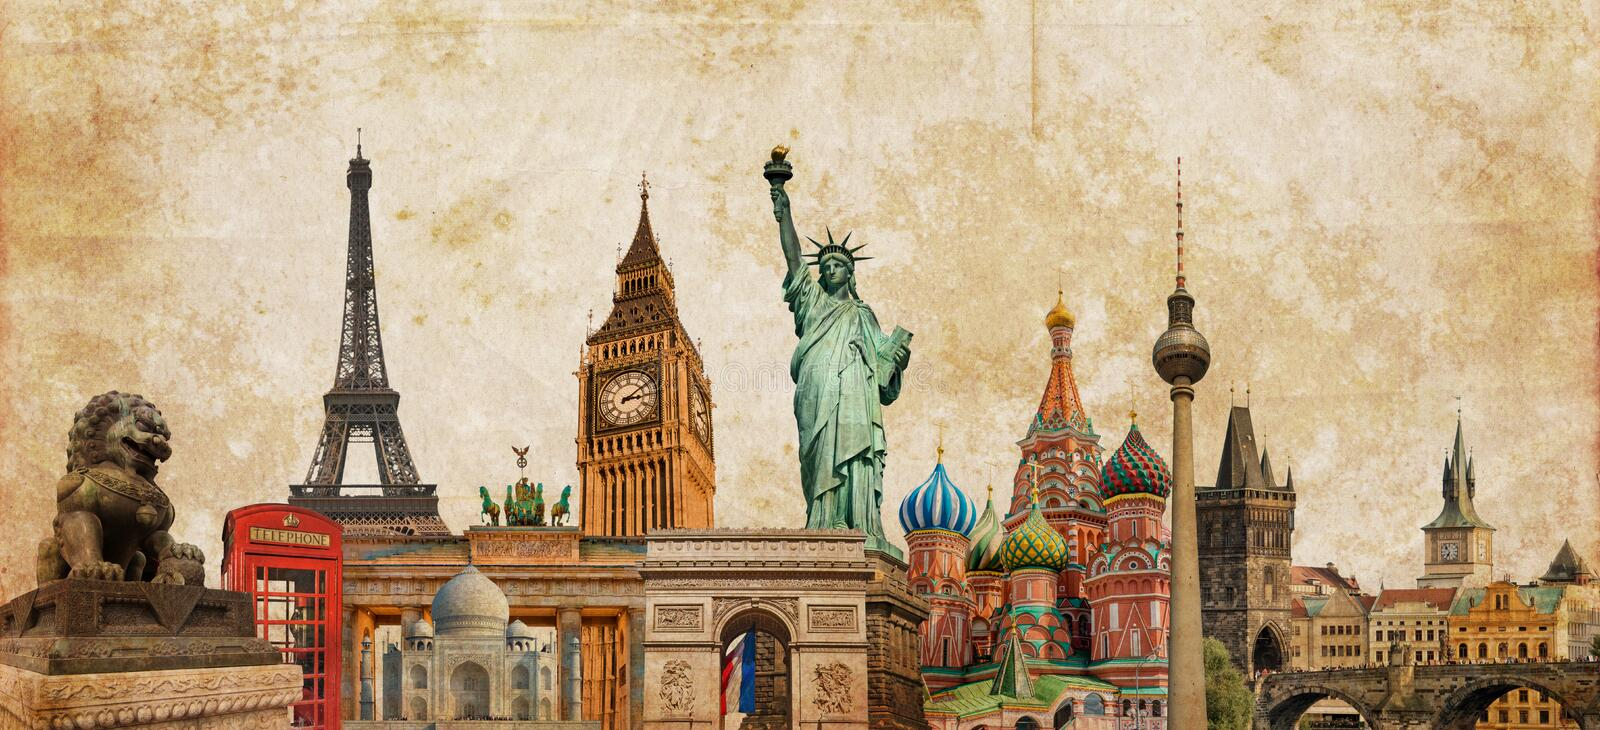 Download World Landmarks Photo Collage On Vintage Tes Sepia Textured Background, Travel Tourism And Study Around The World Concept, Vintag Stock Photo - Image of london, france: 94756410